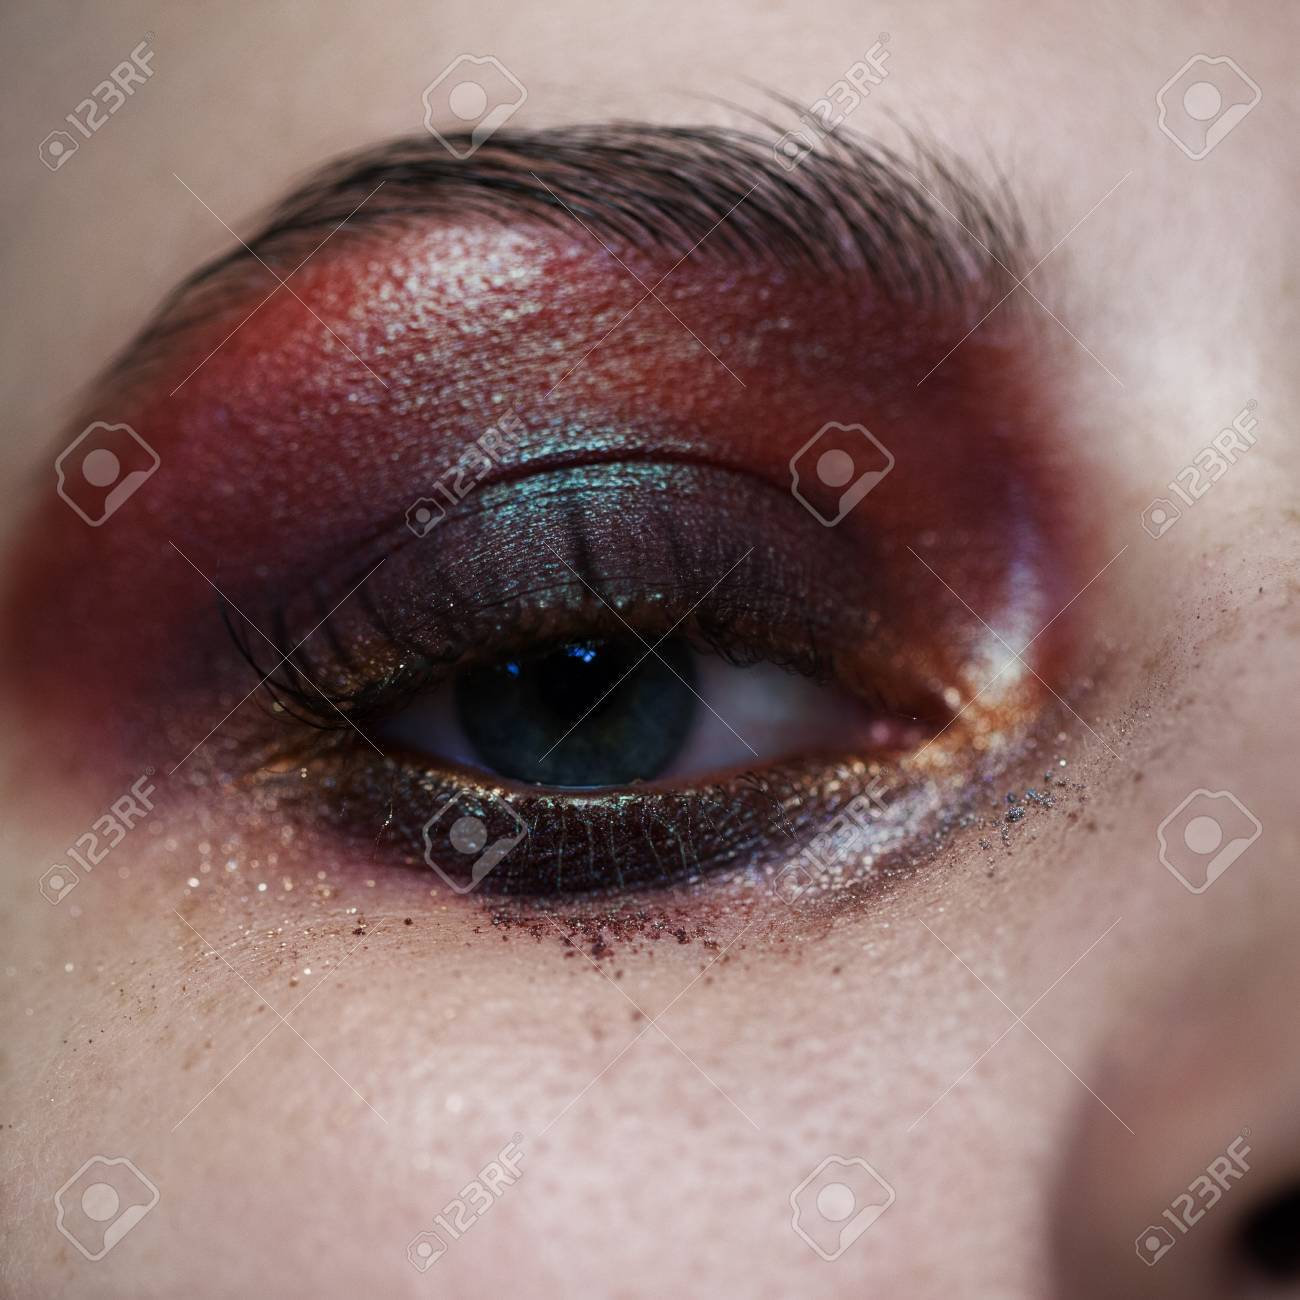 Colorful Eye Makeup Closeup Stock Photo Picture And Royalty Free